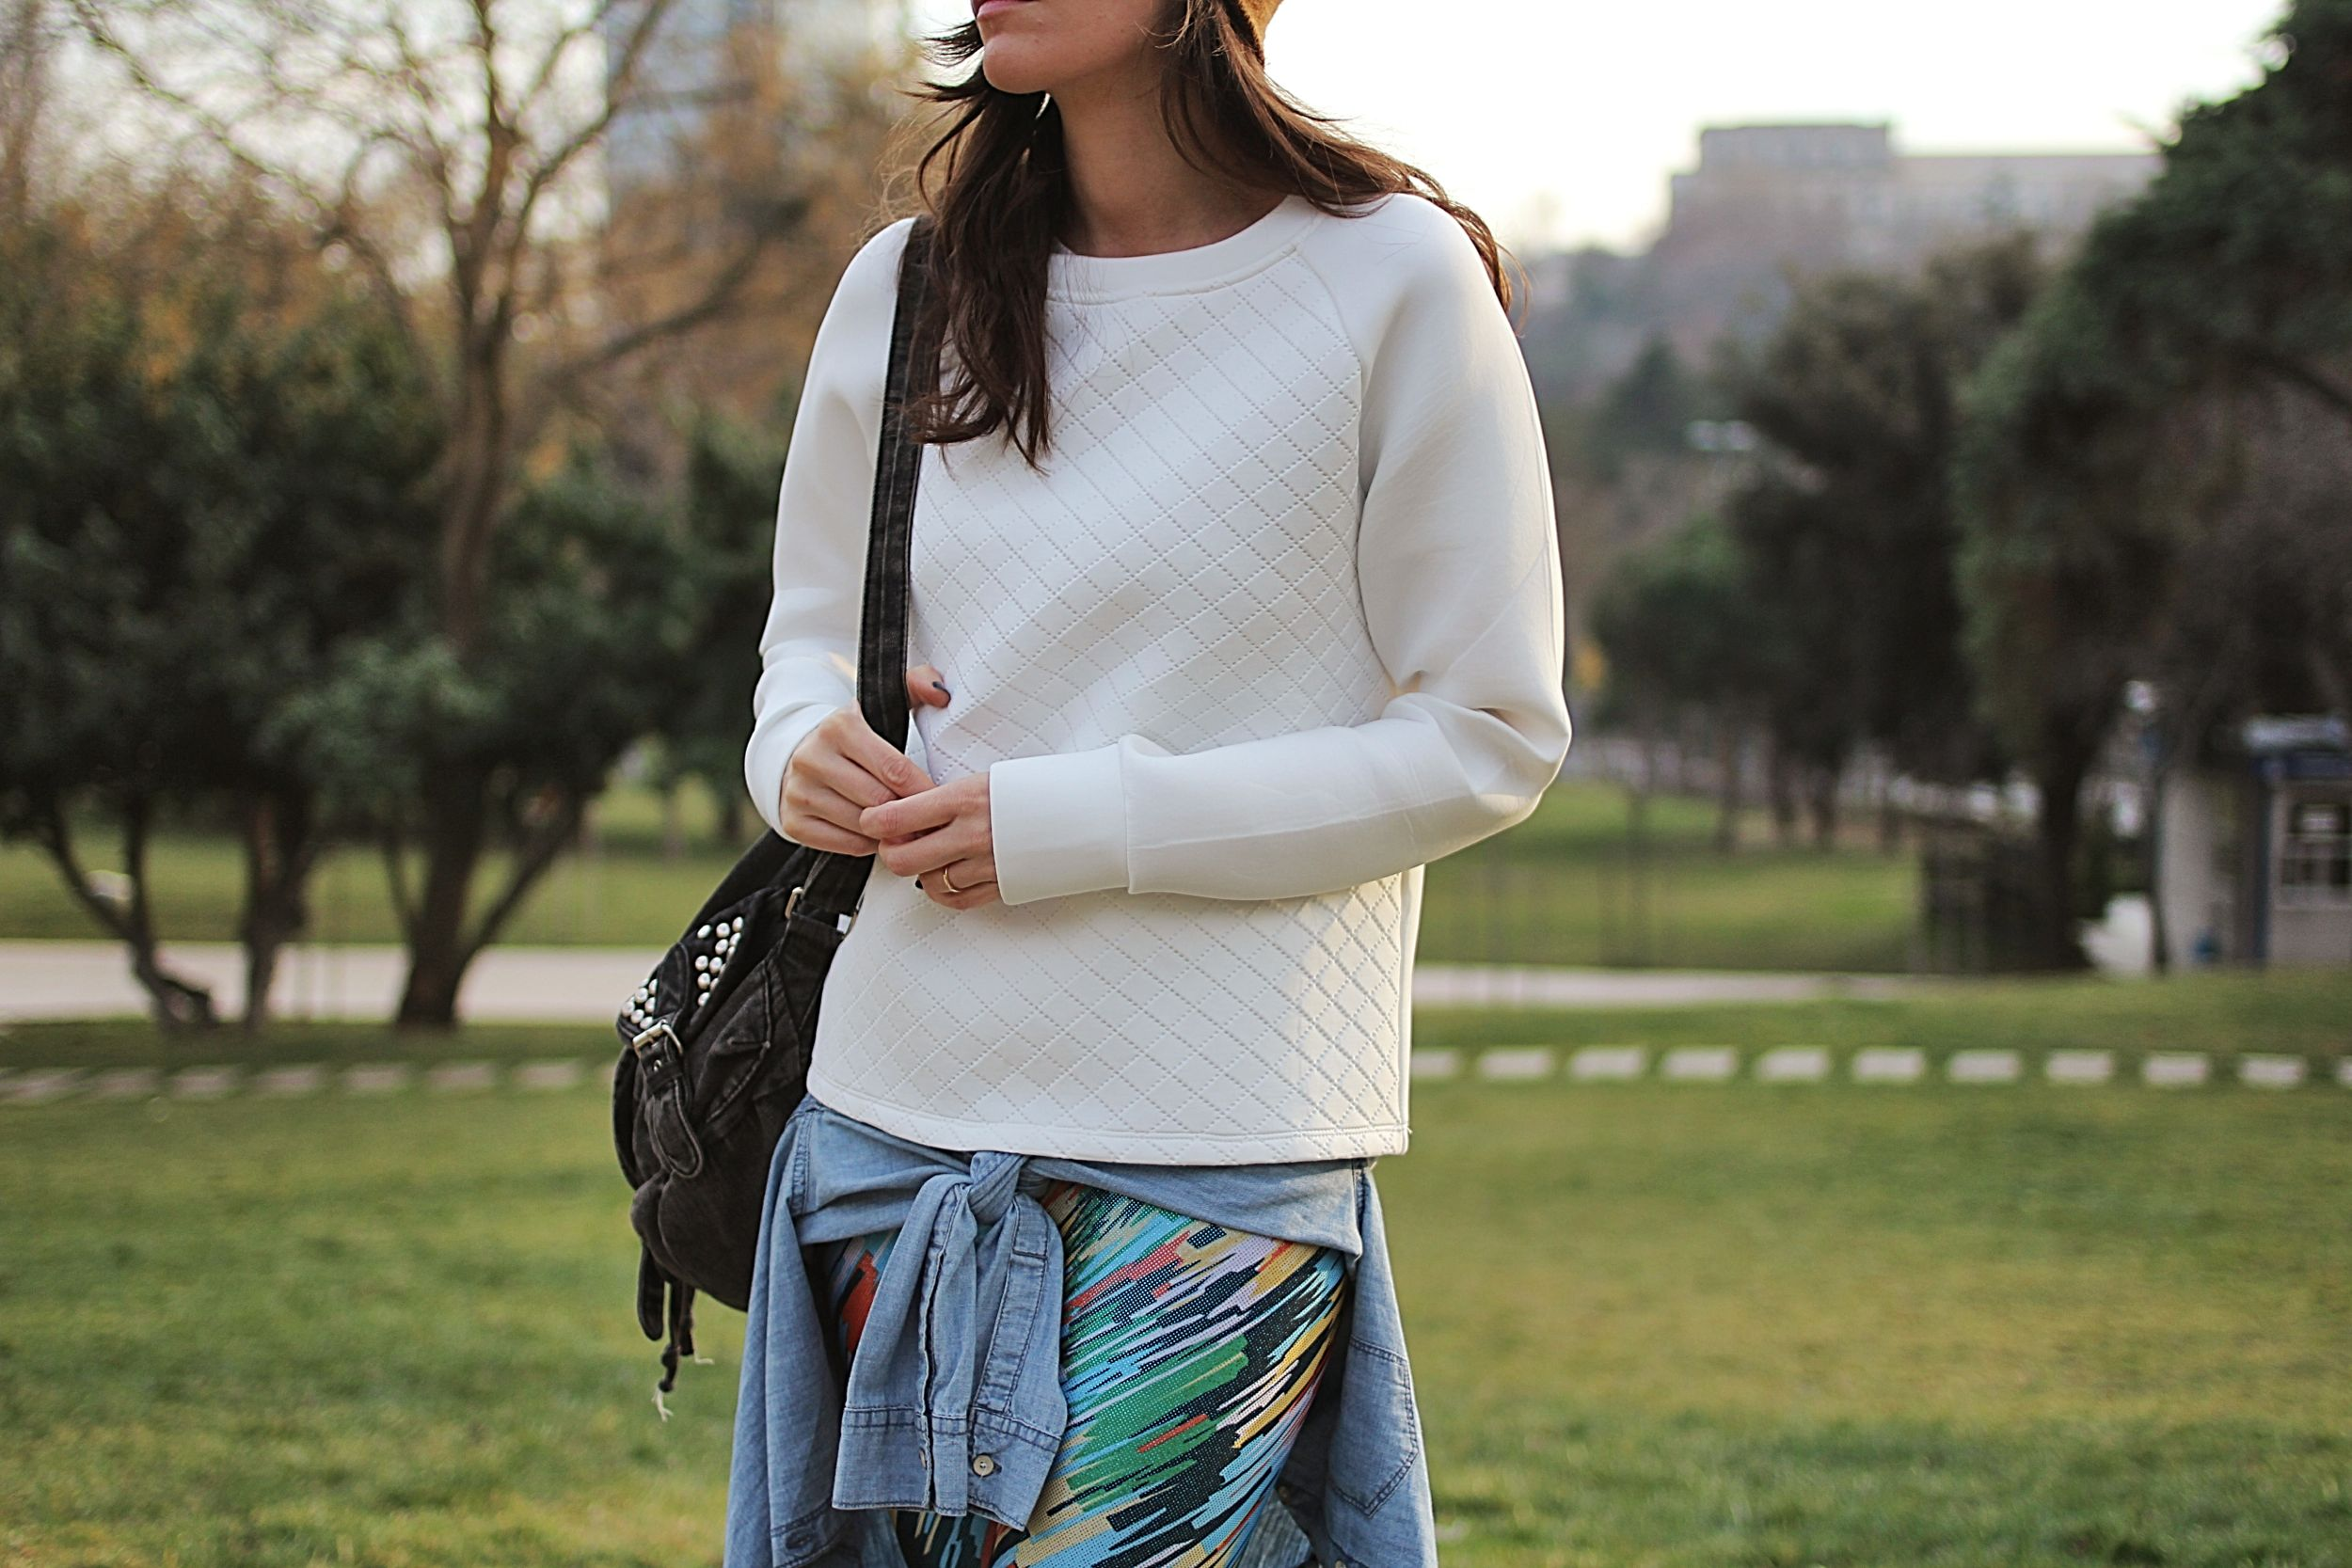 off ne giysem, billur saatci, blogger, turkish blogger, street style, gap, american apparel, enmoda, nike, airforce, super